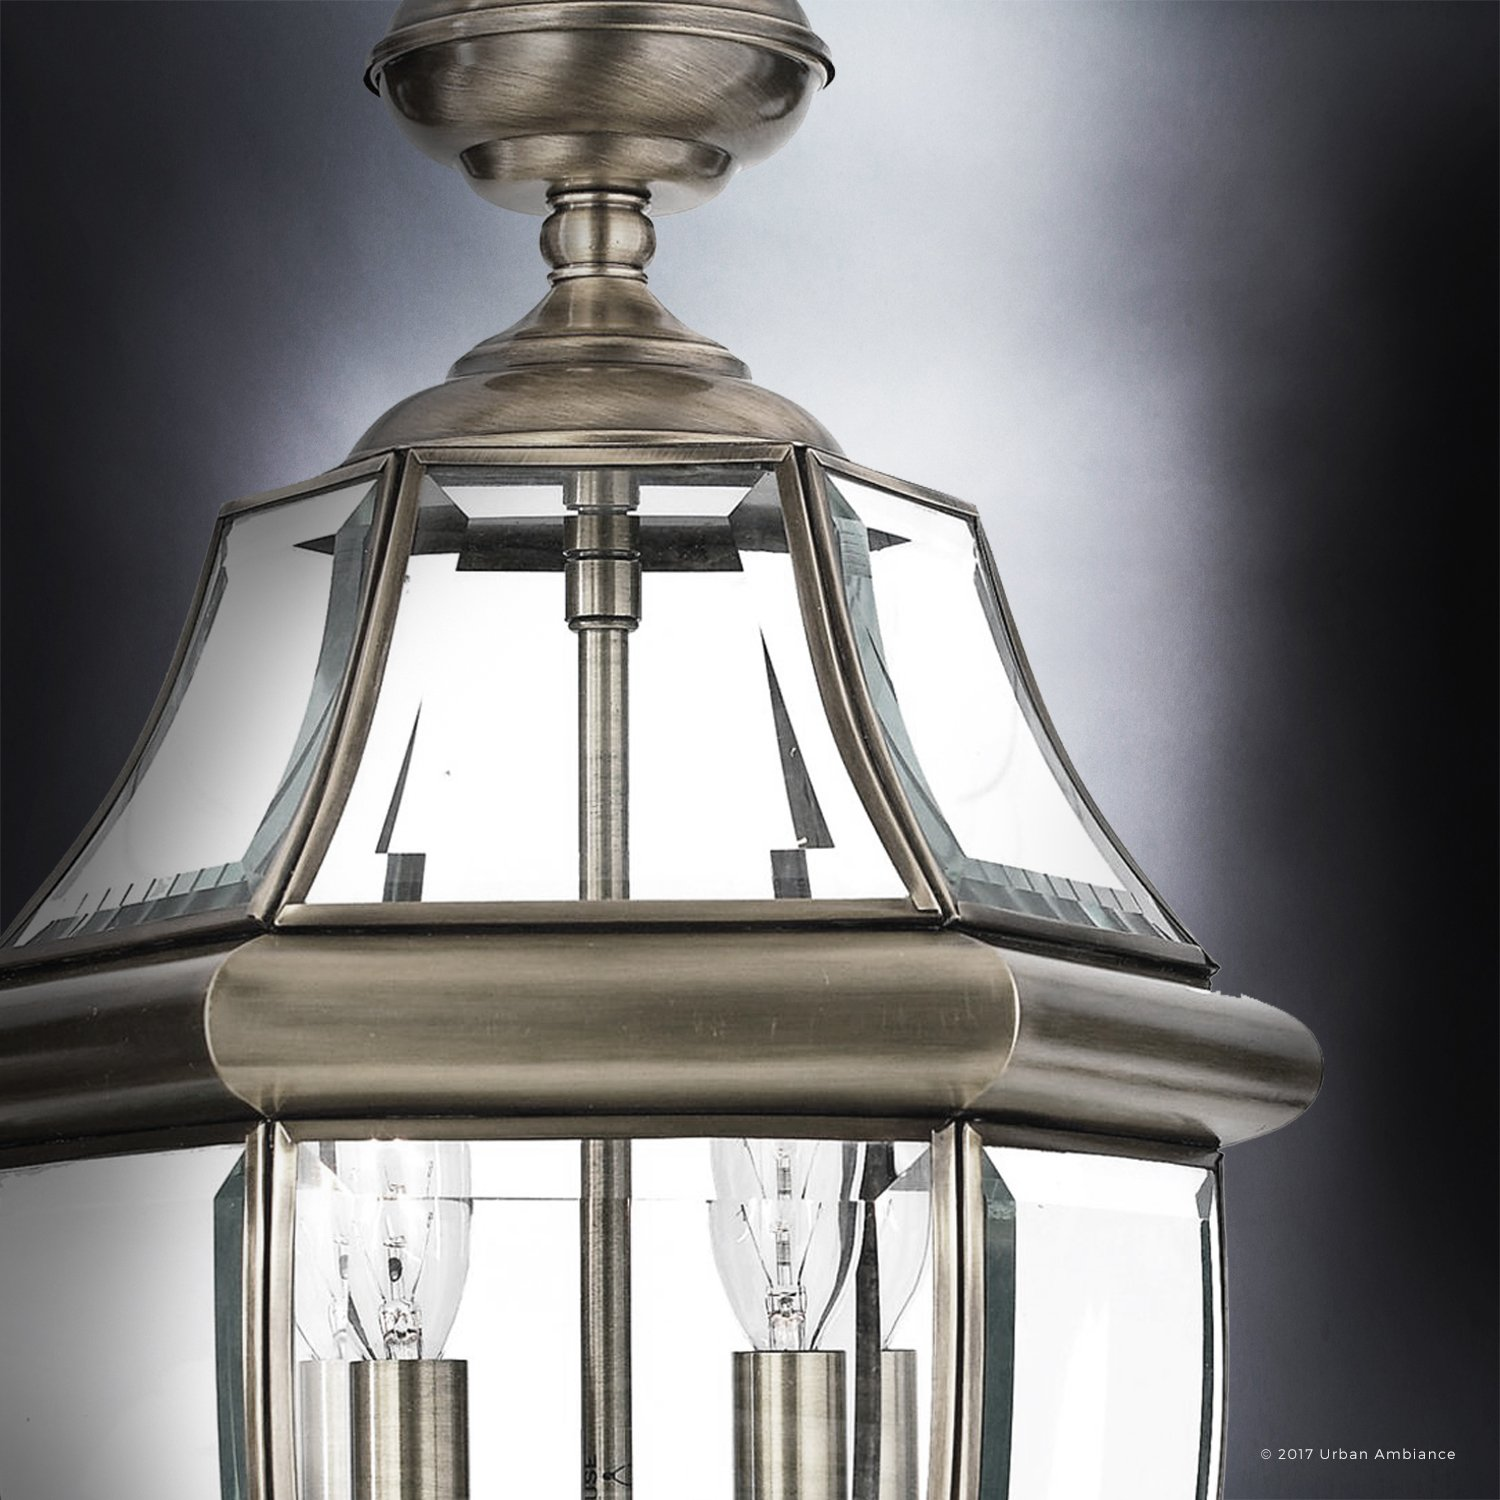 Luxury Colonial Outdoor Pendant Light, Large Size: 19''H x 11''W, with Tudor Style Elements, Versatile Design, Classy Aged Silver Finish and Beveled Glass, UQL1158 by Urban Ambiance by Urban Ambiance (Image #5)